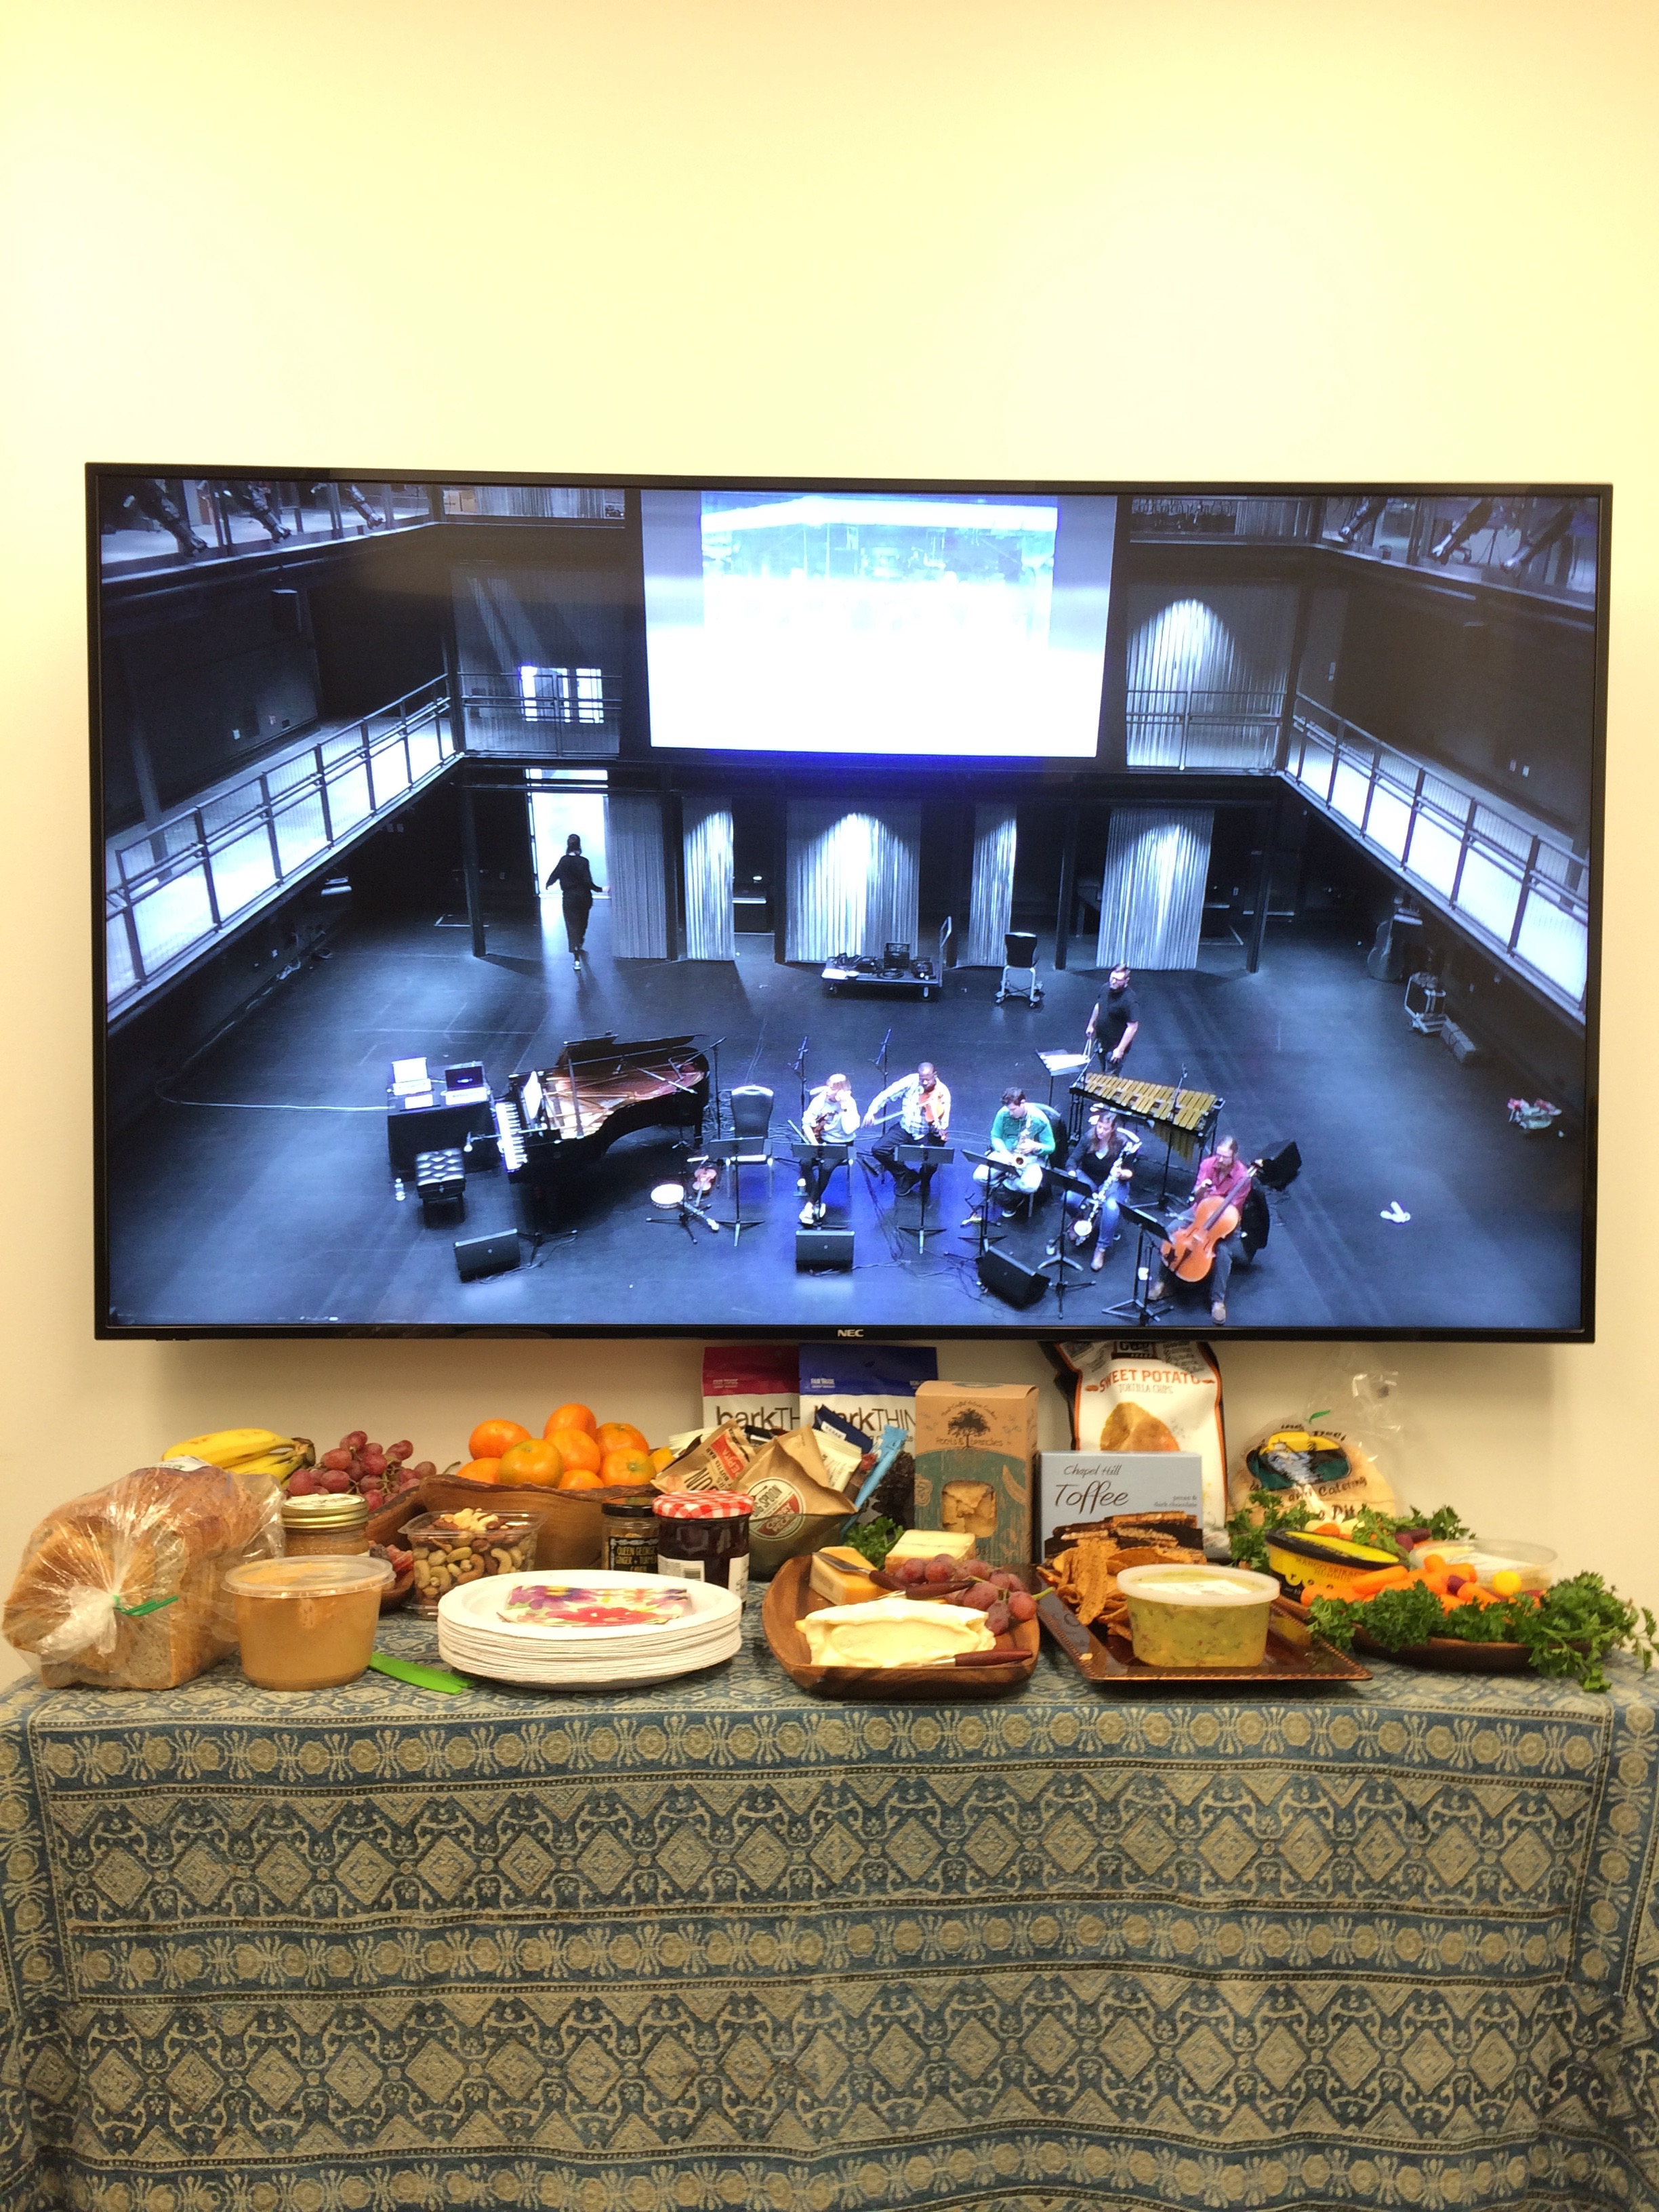 From the Green Room: the hospitality was outstanding, and we could monitor the performance from the live video feed.